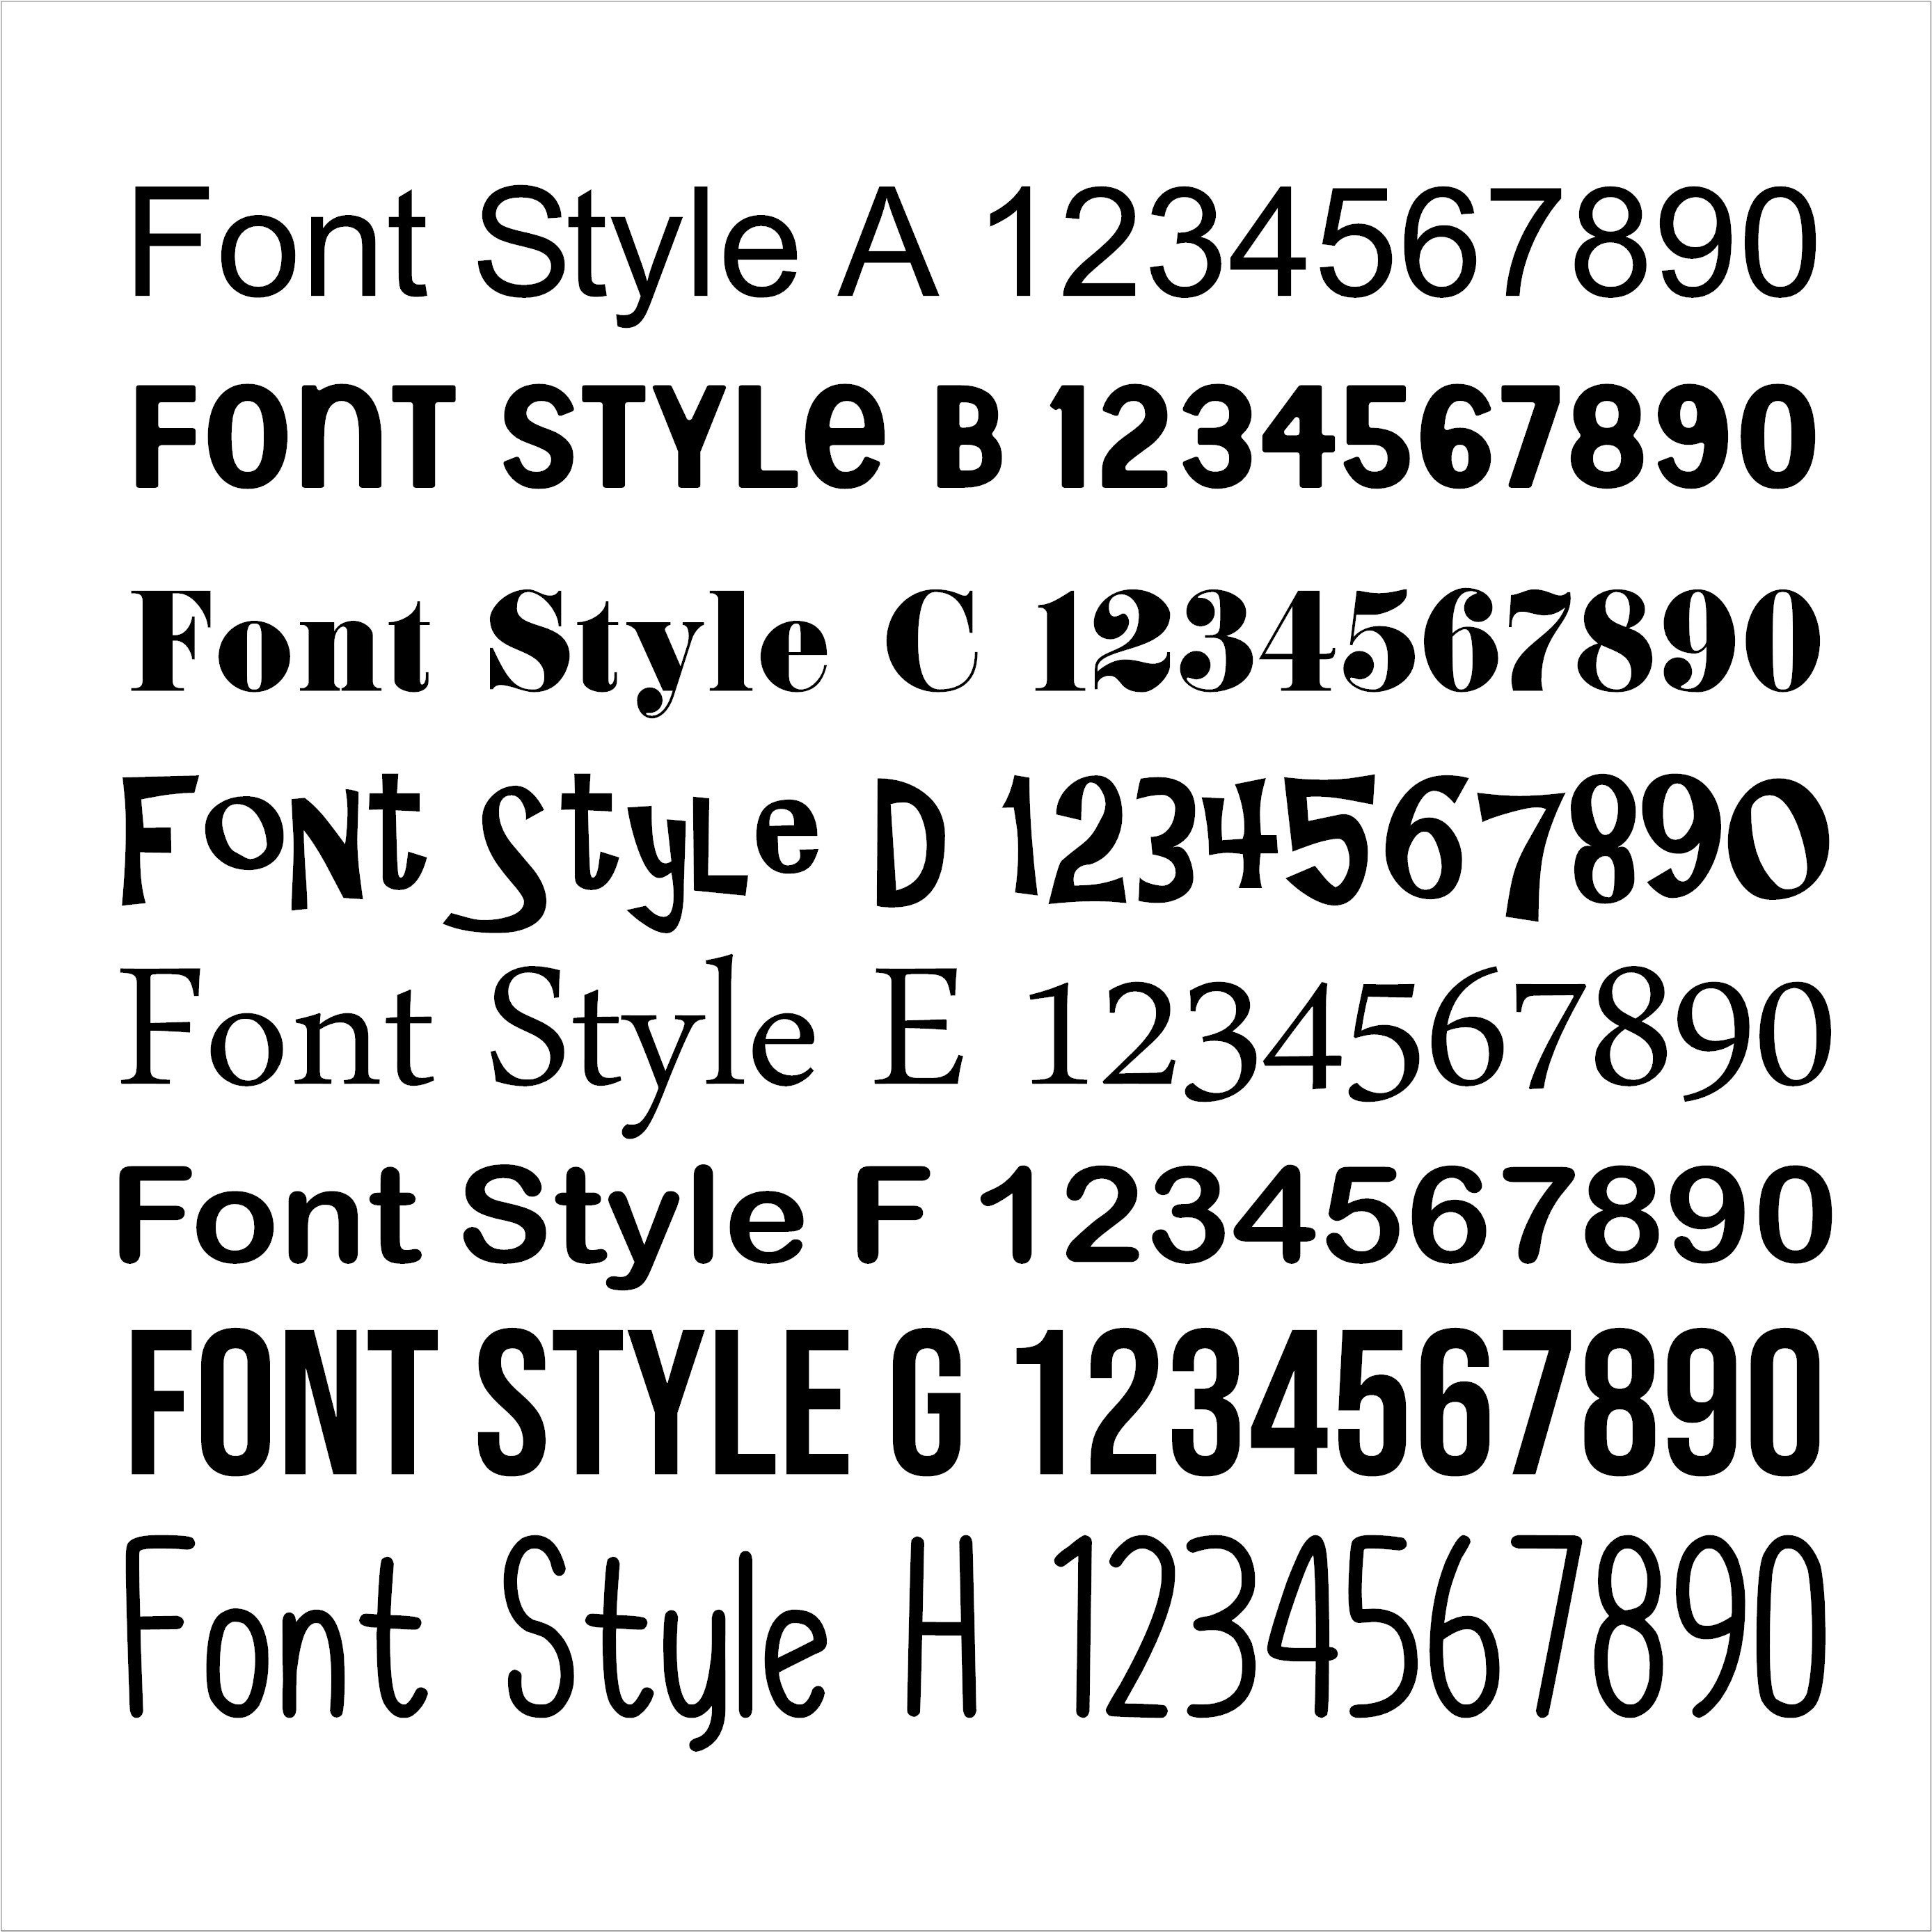 Cut out letters and numbers - Any Size, Any Font, Any Shape